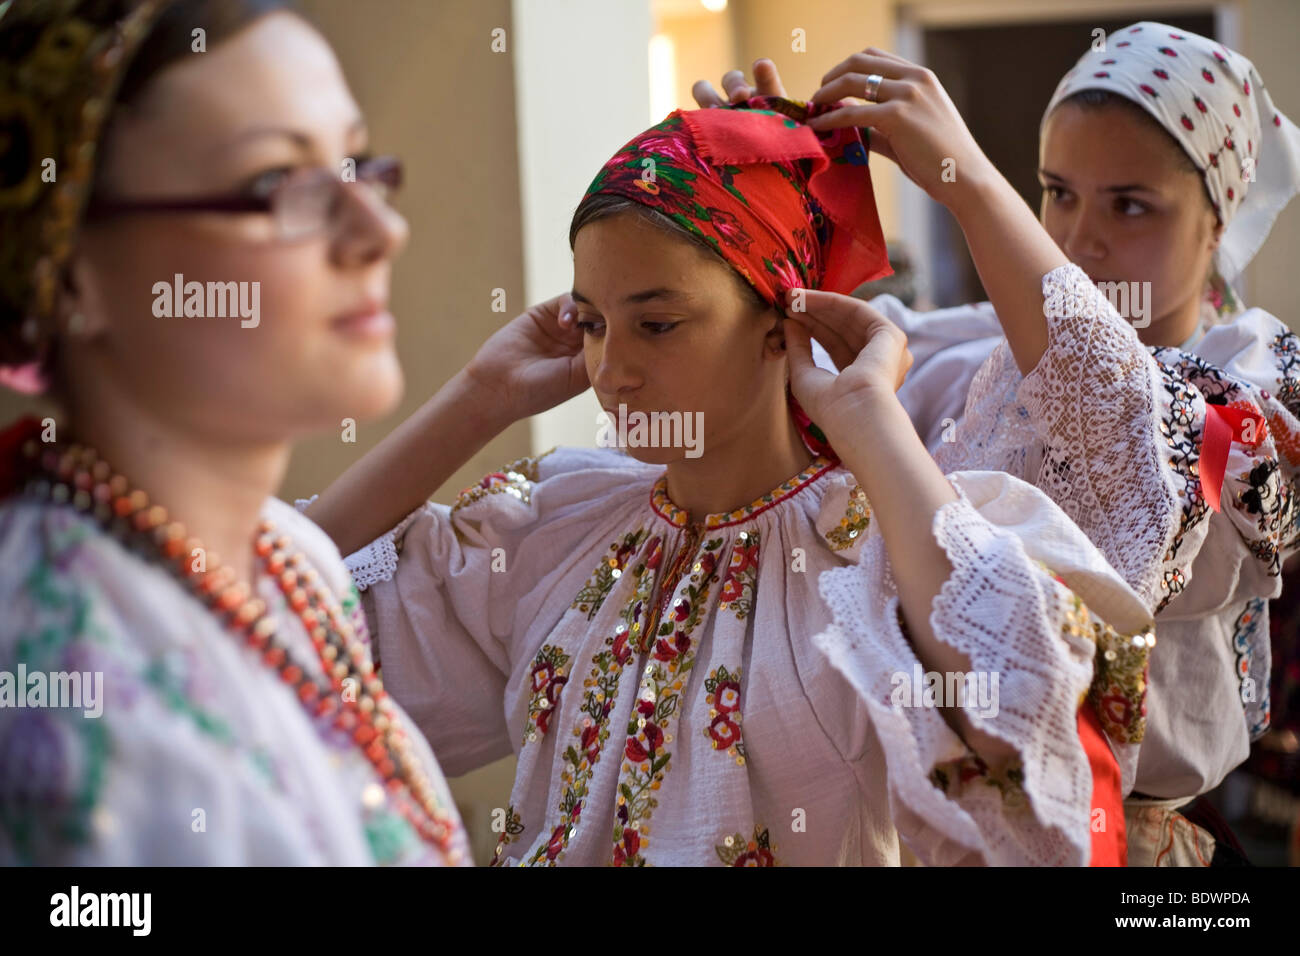 Girls help each other to tie a costume backstage during a folk event in Pecs, Hungary - Stock Image